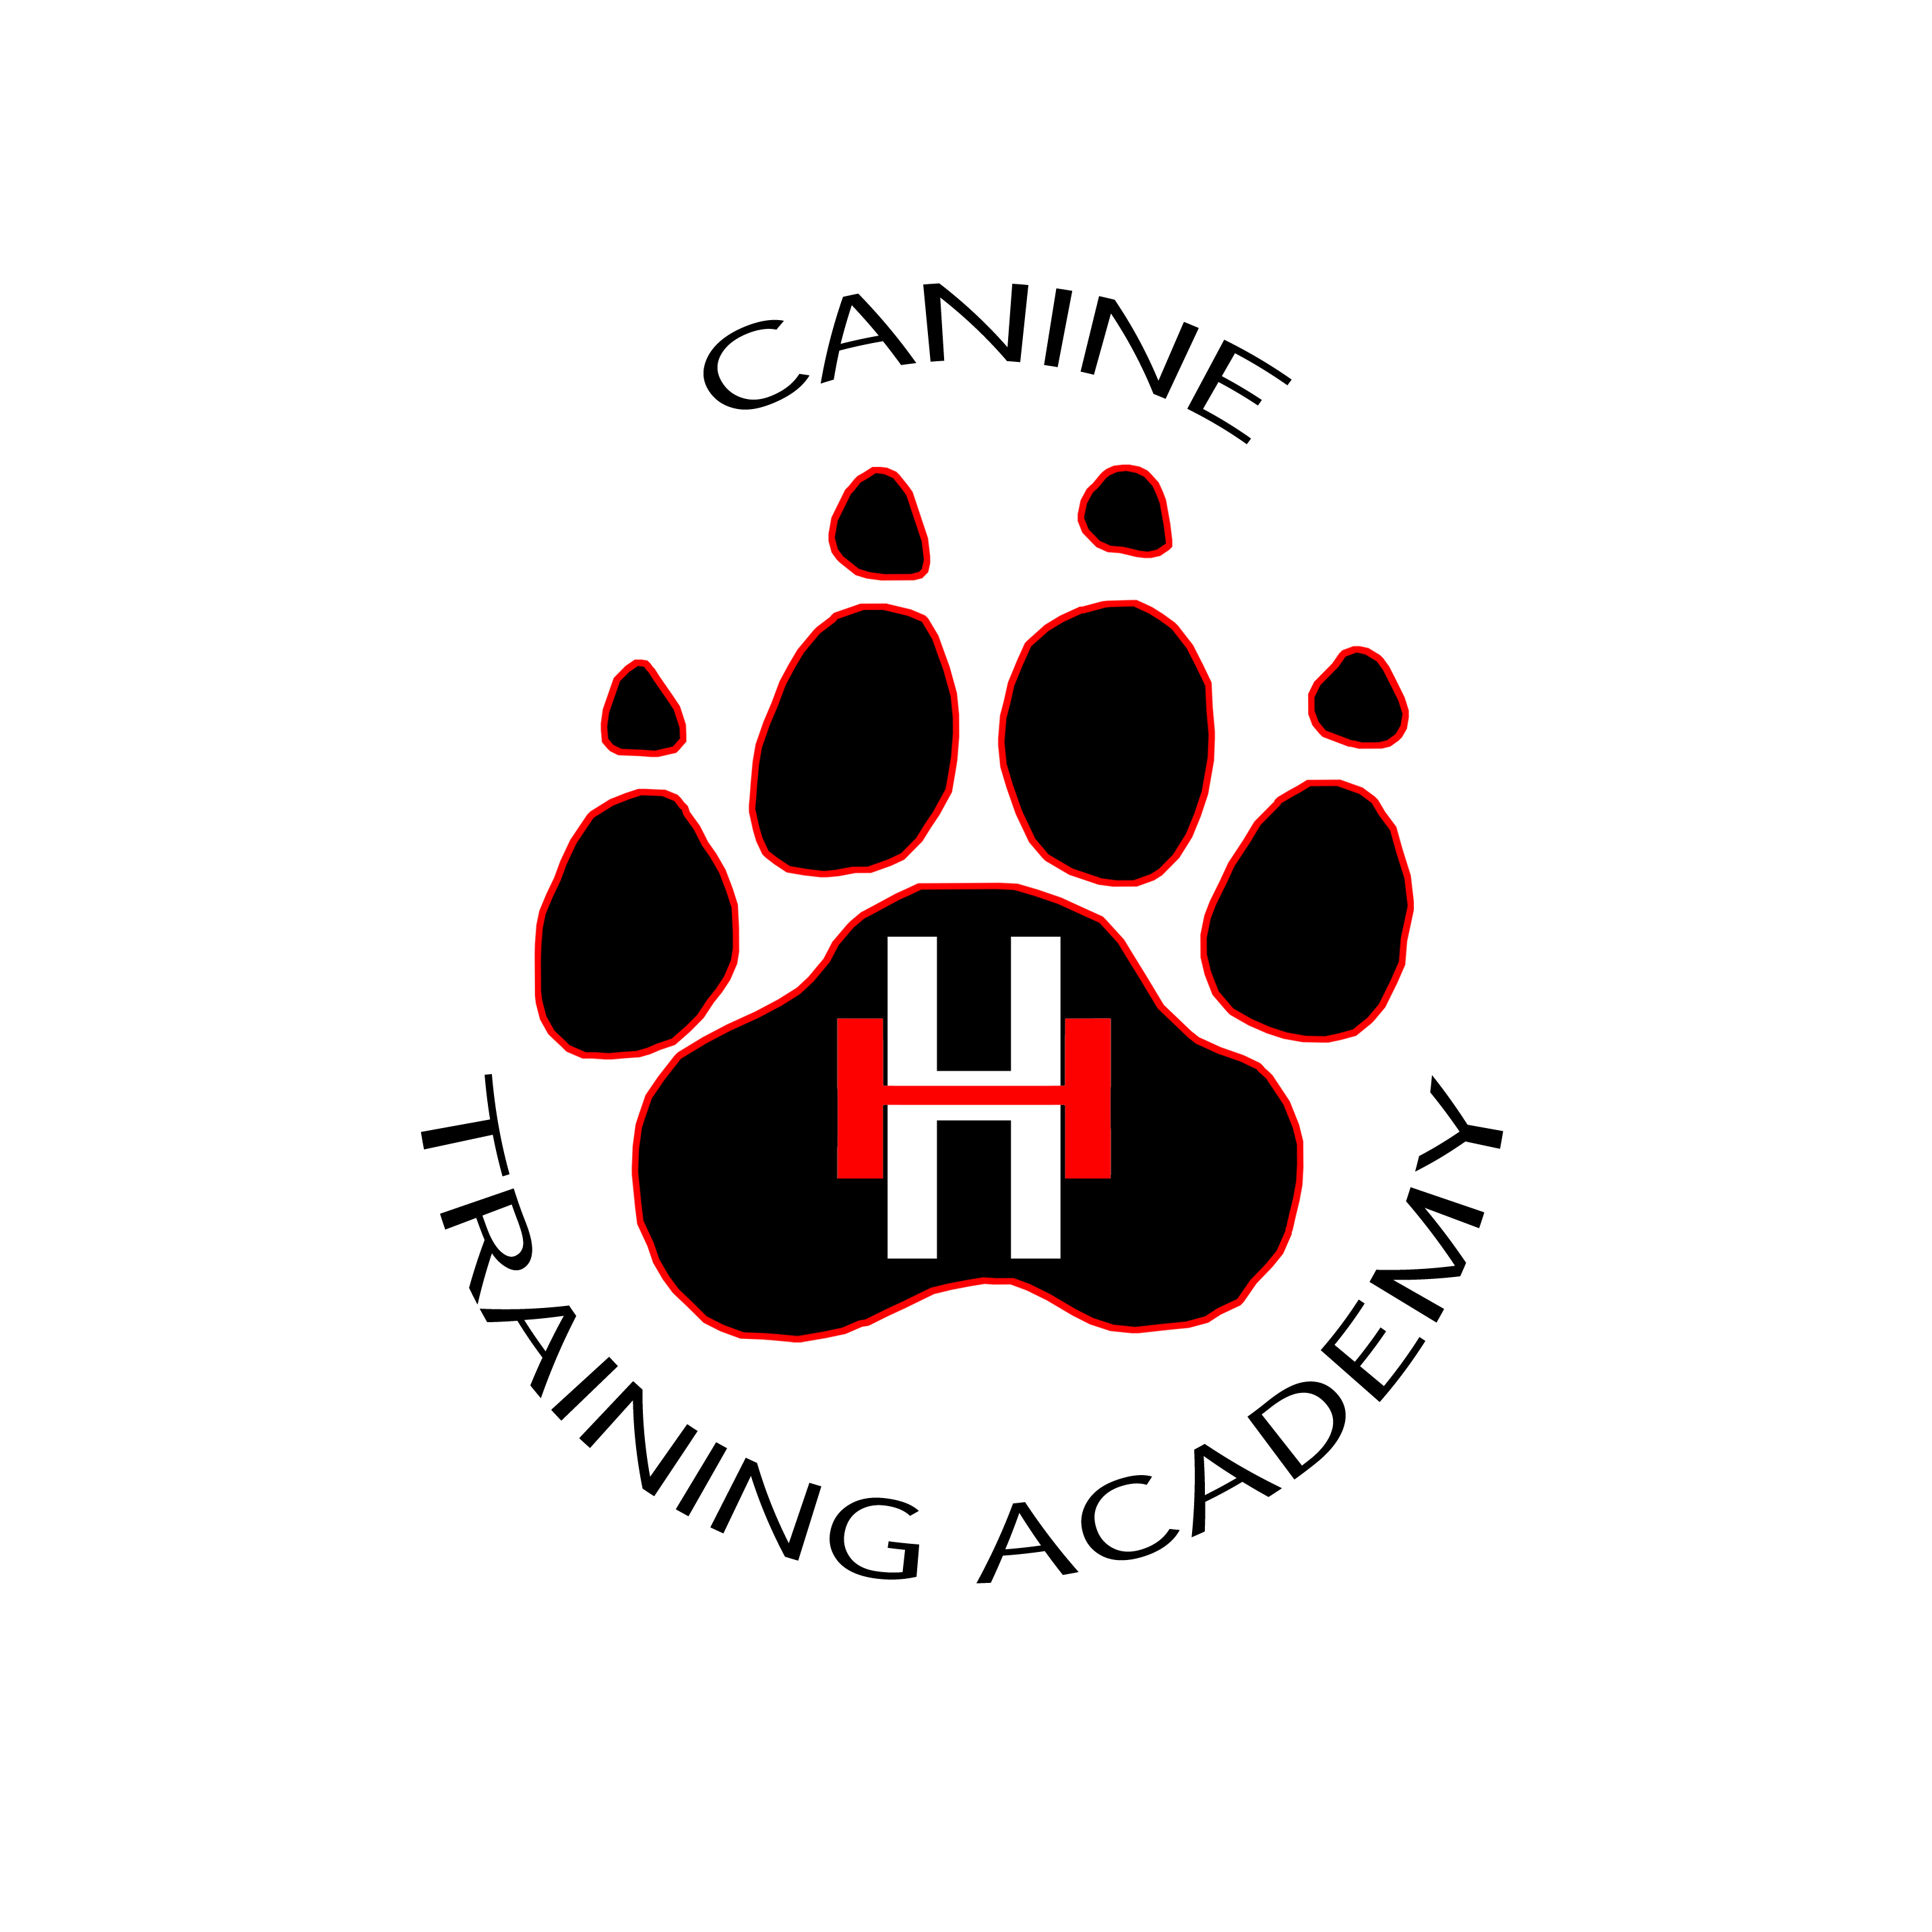 Double H Canine Training Academy